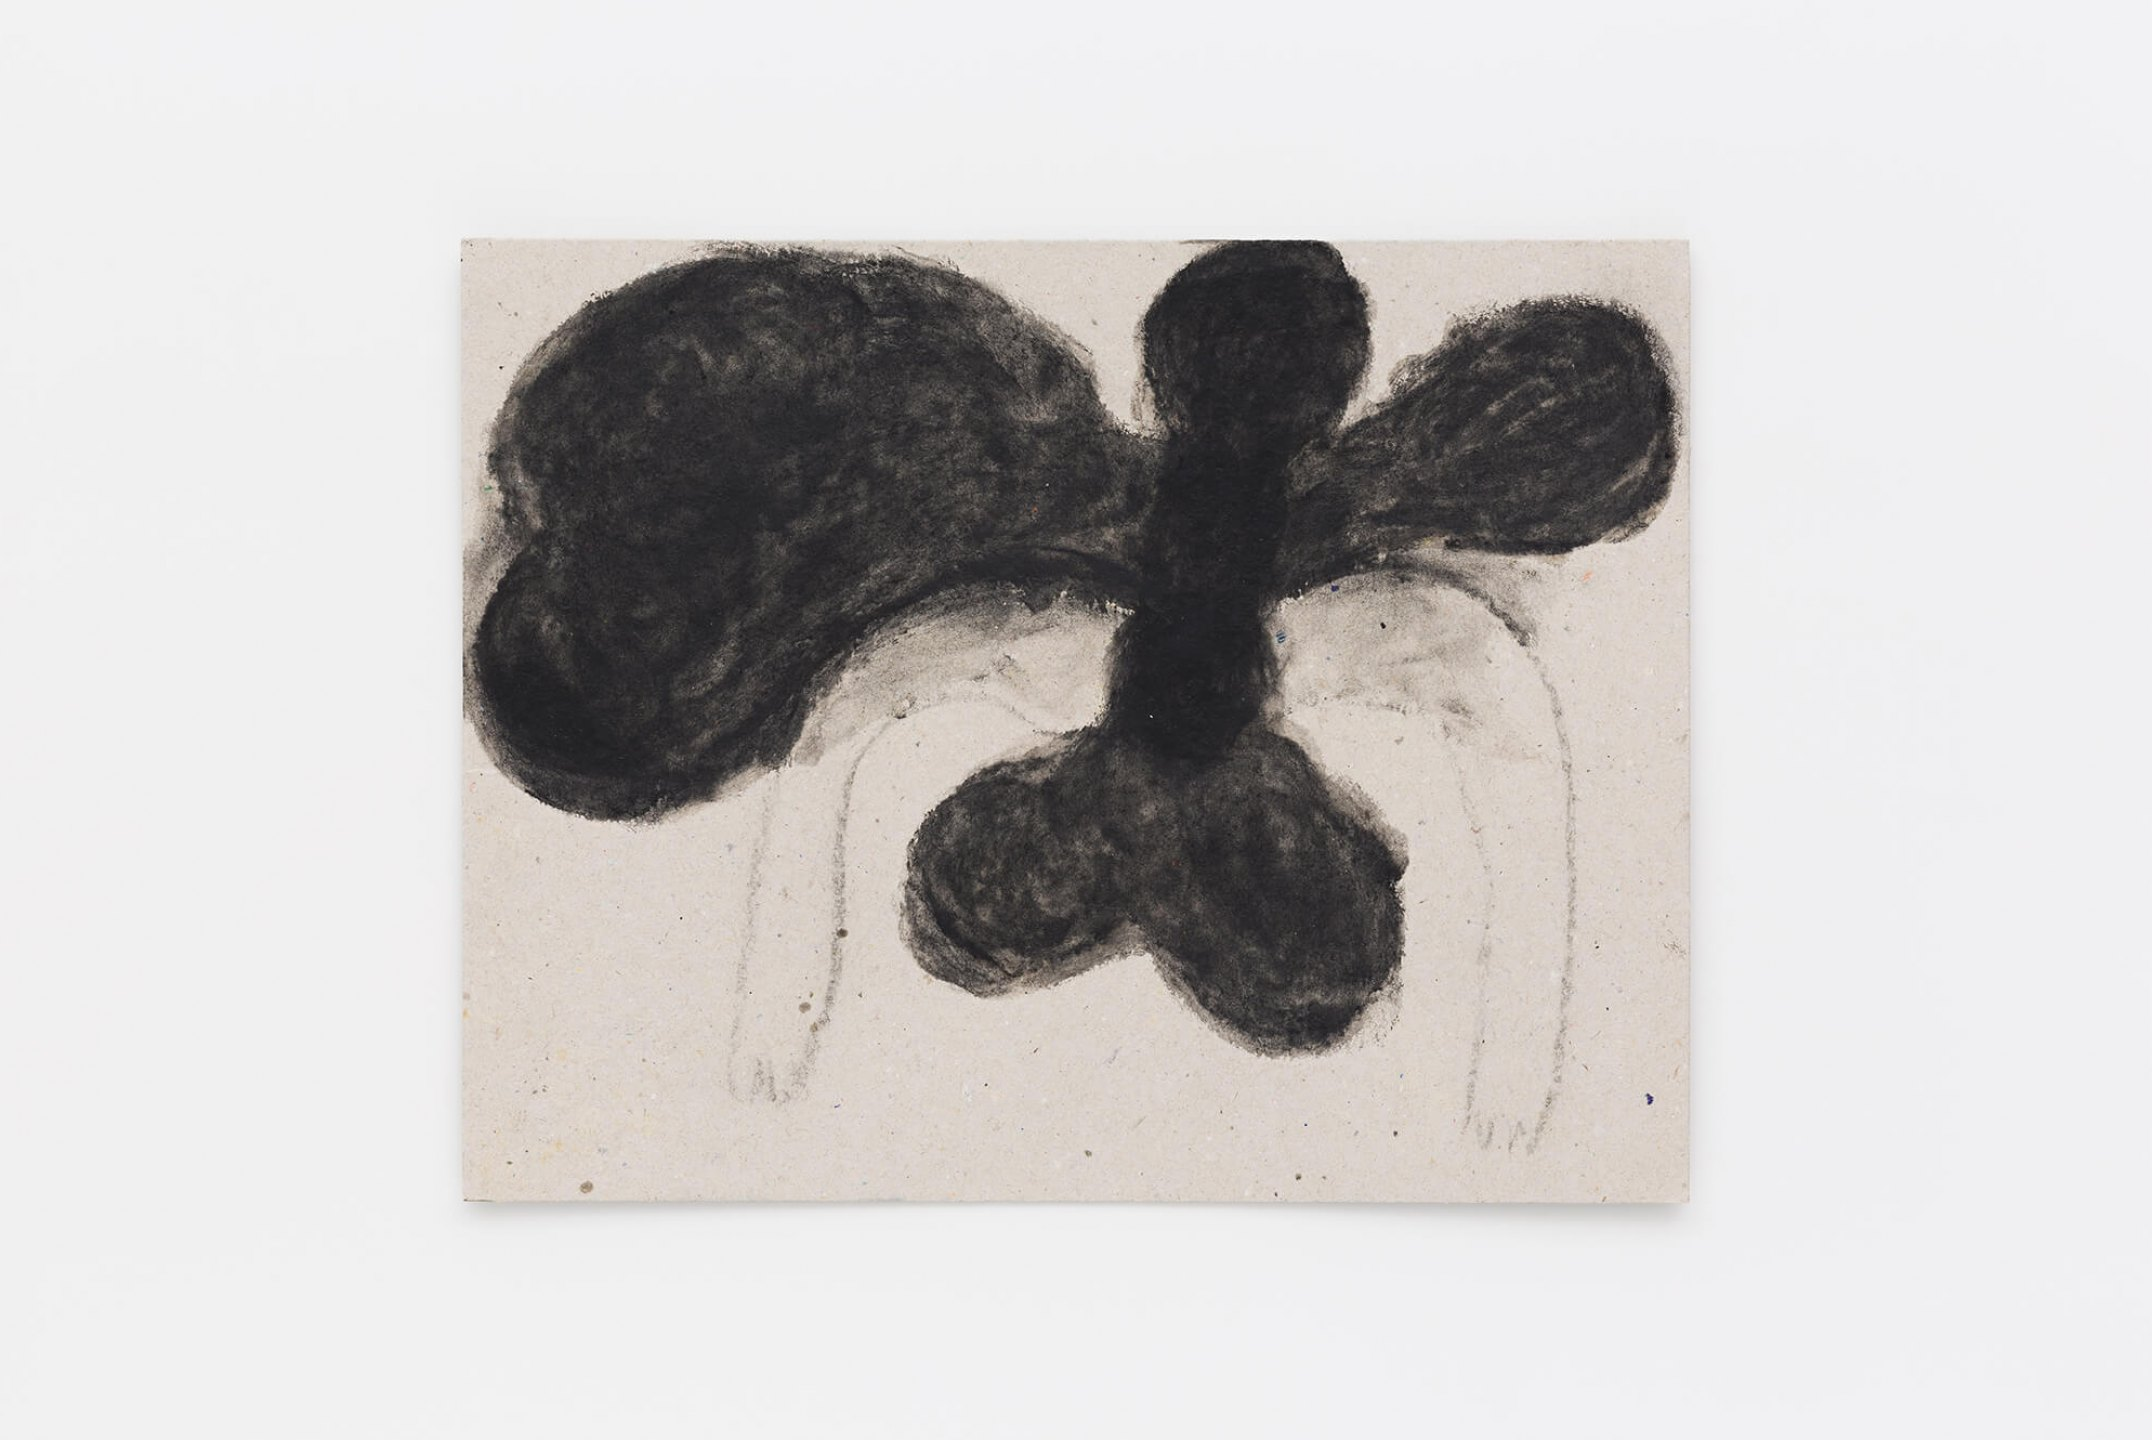 Solange Pessoa,&nbsp;<em>untitled</em>,&nbsp;2009, pastel on cardboard, 21,7 × 27,7 cm - Mendes Wood DM